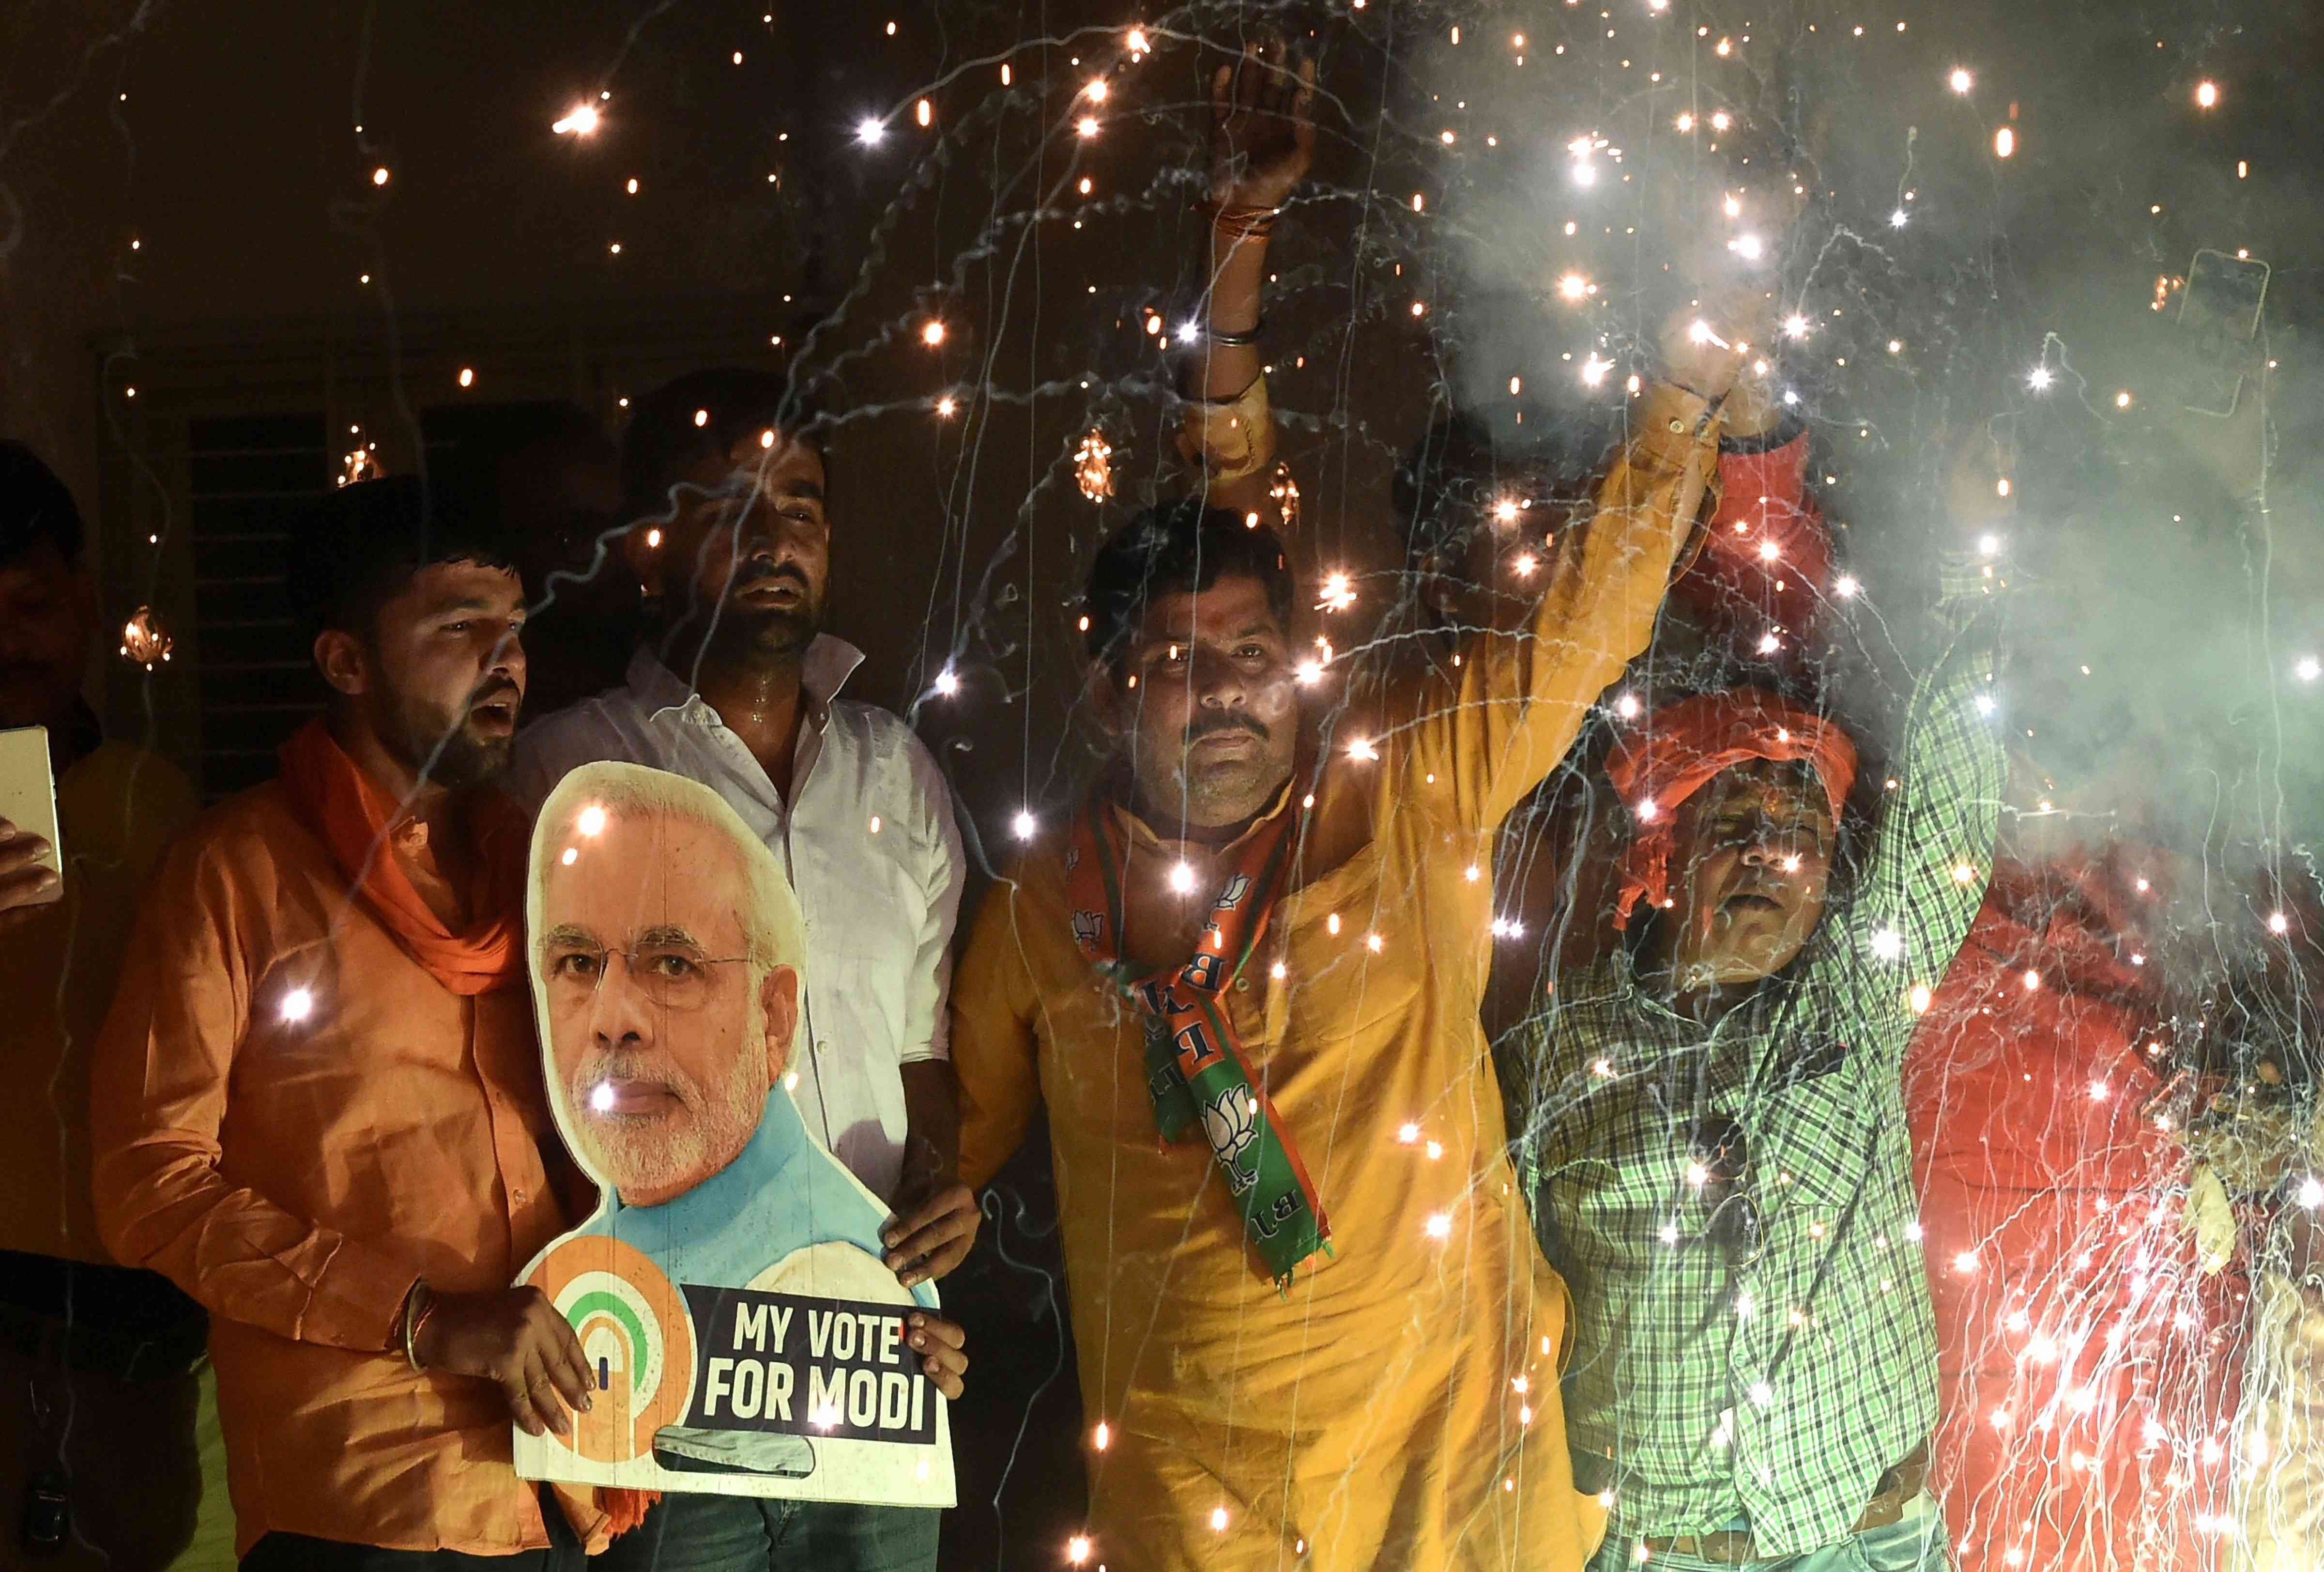 Modi supporters in Lucknow. Credit: Nand Kumar/PTI